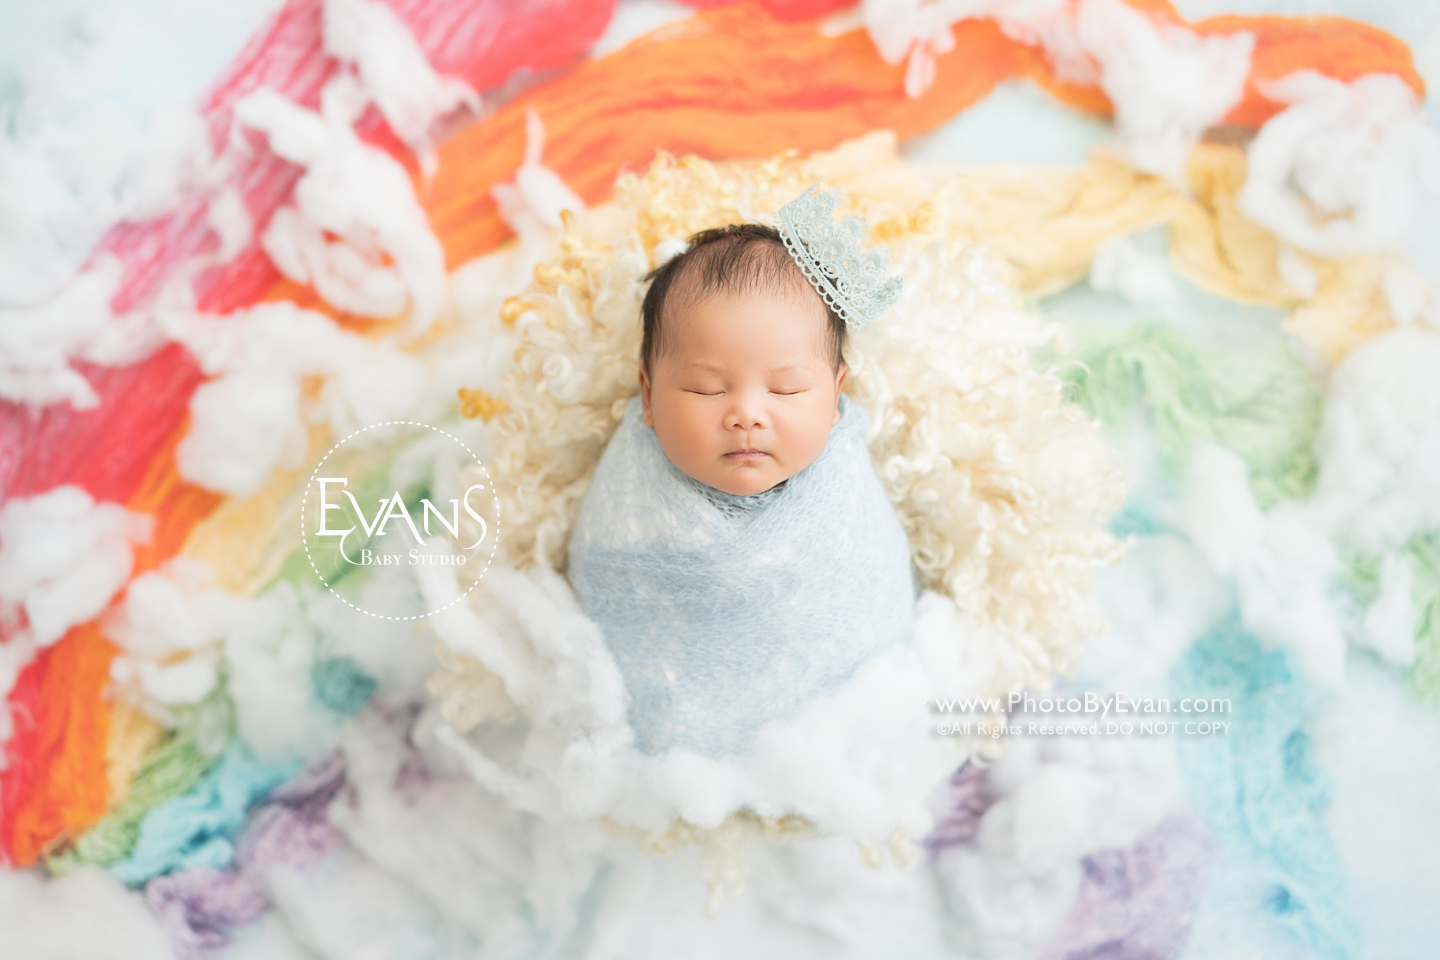 infant photography, newborn photography, newborn hong kong, newborn photography hong kong, baby studio, baby photography, newborn studio, newborn baby photography, baby studio, newborn studio, newborn photo, natural light, 香港嬰兒攝影, 香港初生嬰兒, 初生嬰兒, 初生嬰兒攝影,嬰兒影樓,嬰兒攝影, 初生嬰兒攝影, newborn 攝影, newborn, 上門攝影, 上門newborn攝影, 上門初生嬰兒攝影,影樓嬰兒攝影,影樓newborn,studio newborn , studio newborn photography